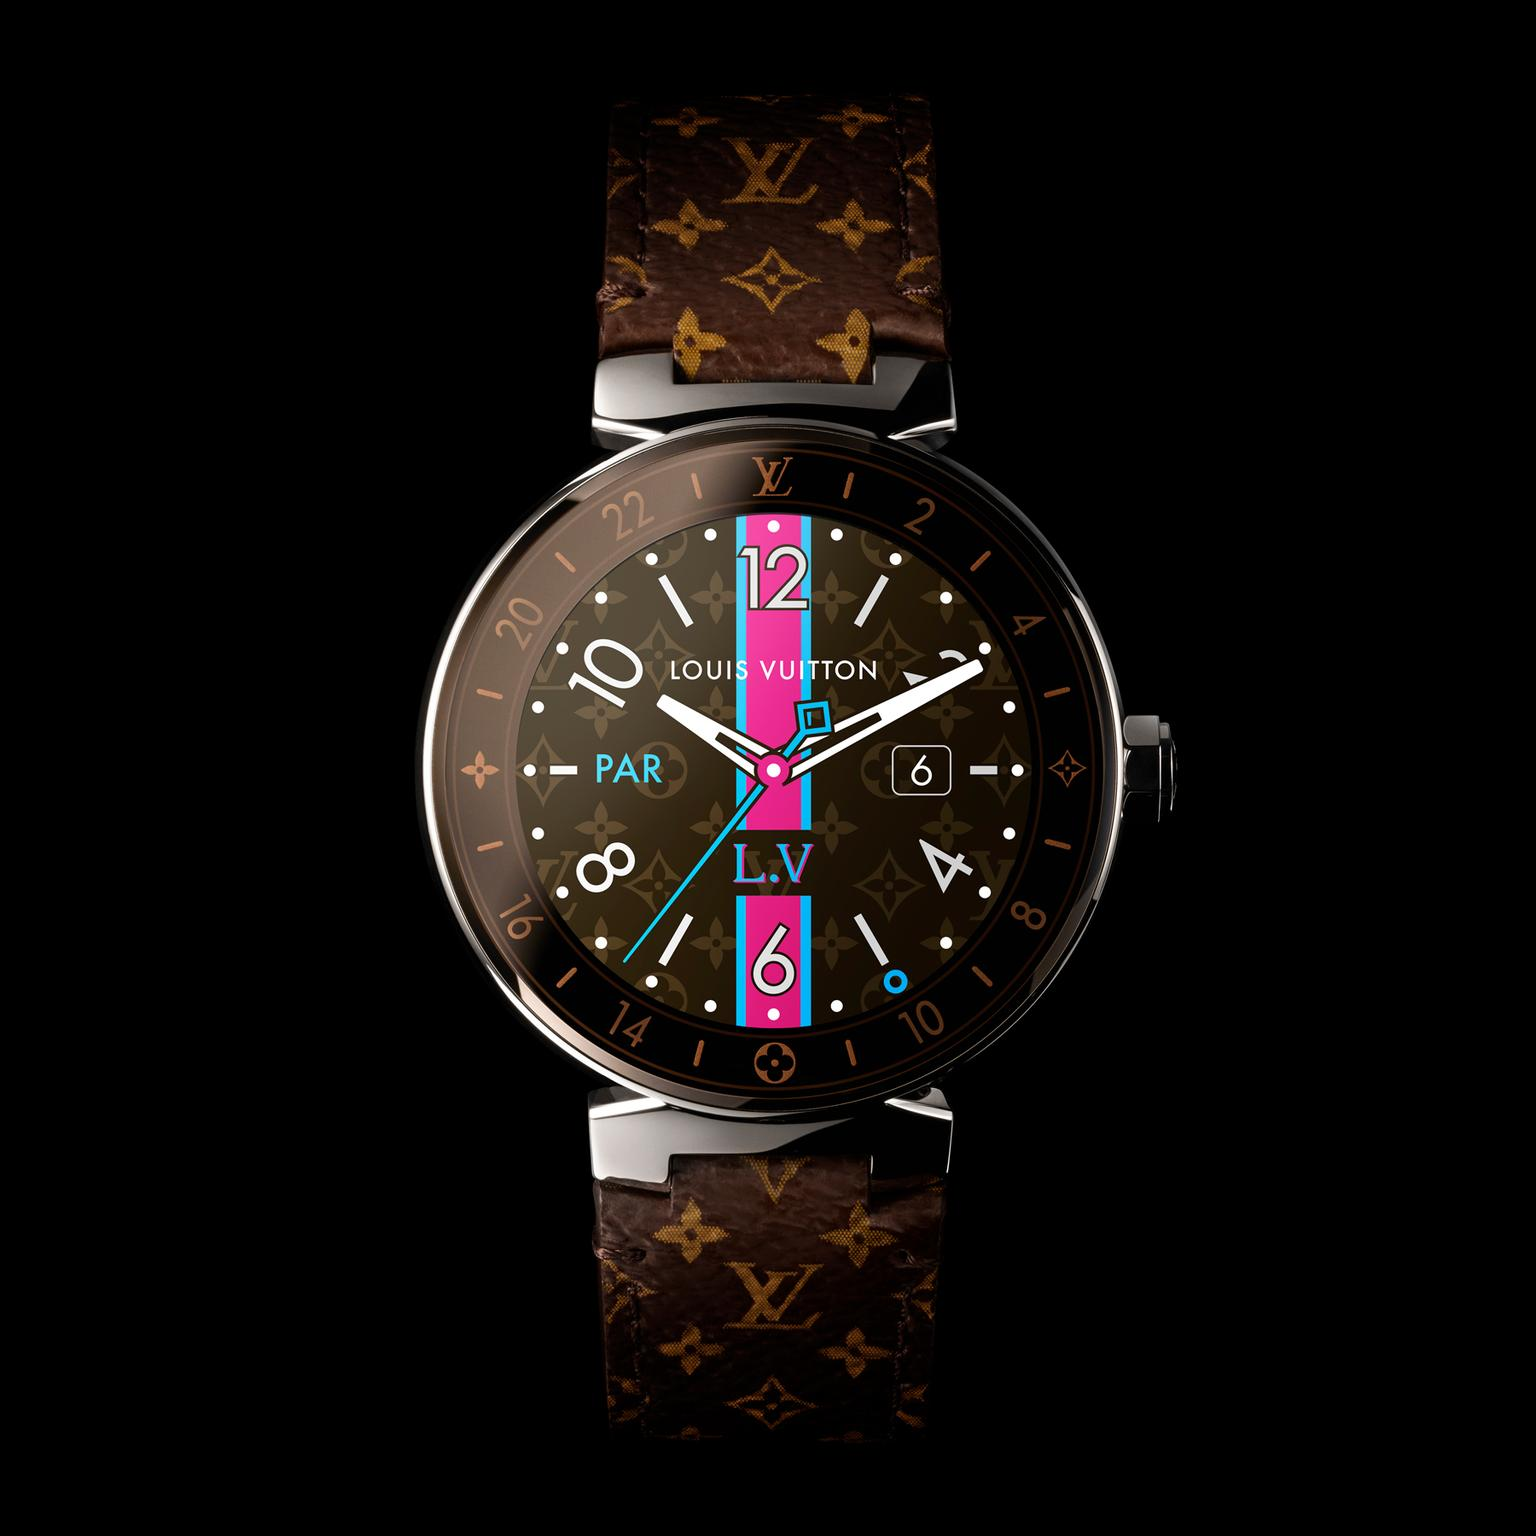 Louis Vuitton Tambour Horizon Monogram